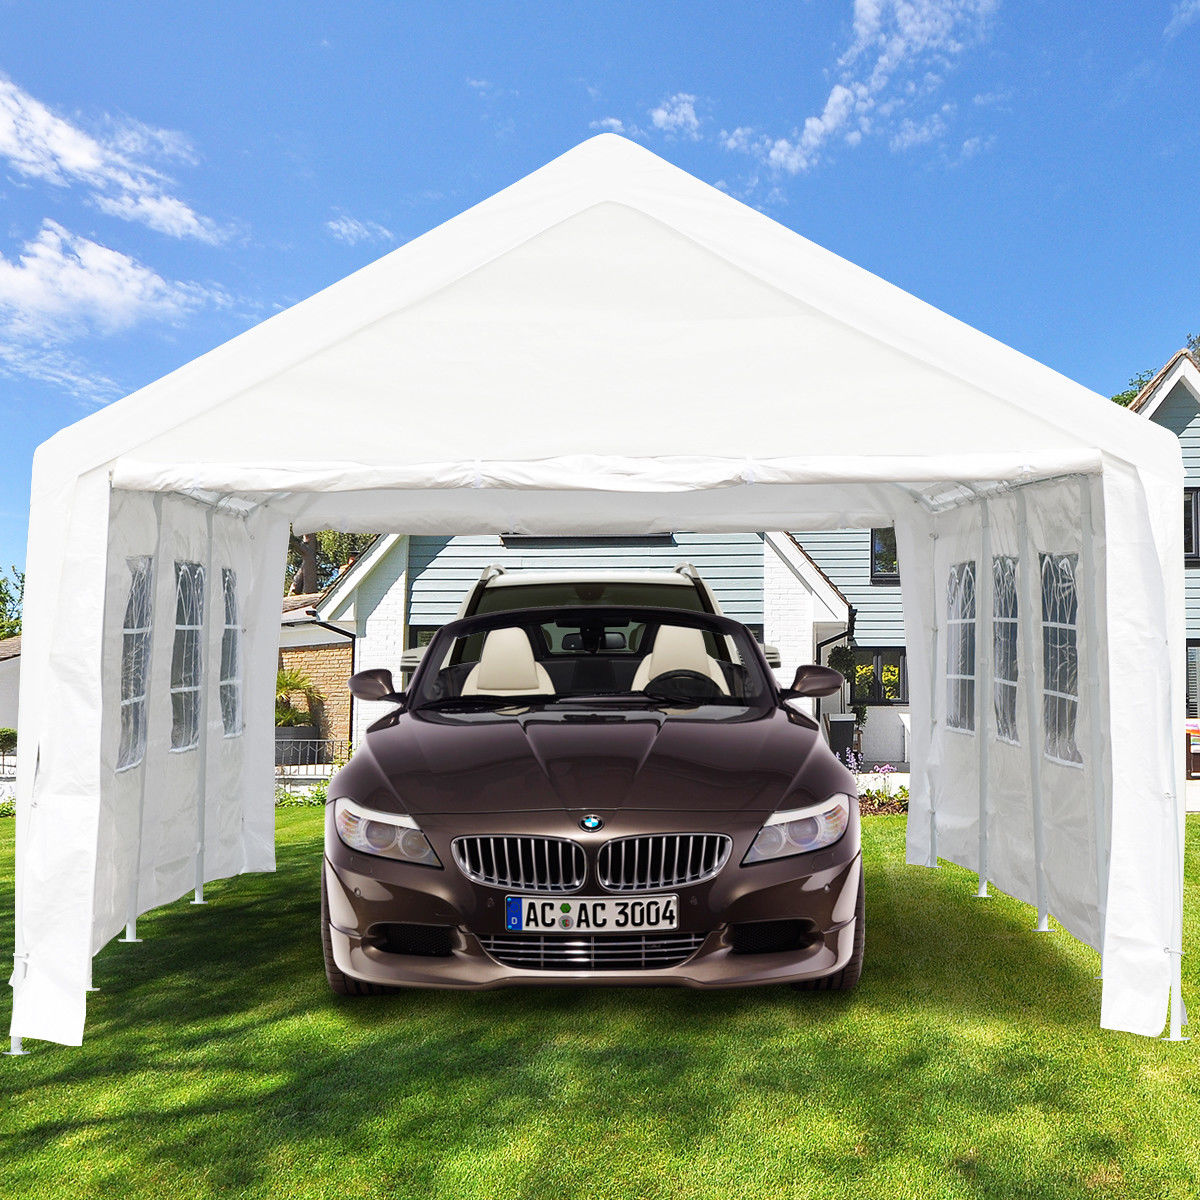 Gymax Outdoor 13' x 26' Canopy Shelter Car Carport Wedding Party Tent Garage Cover Heavy Duty by Gymax